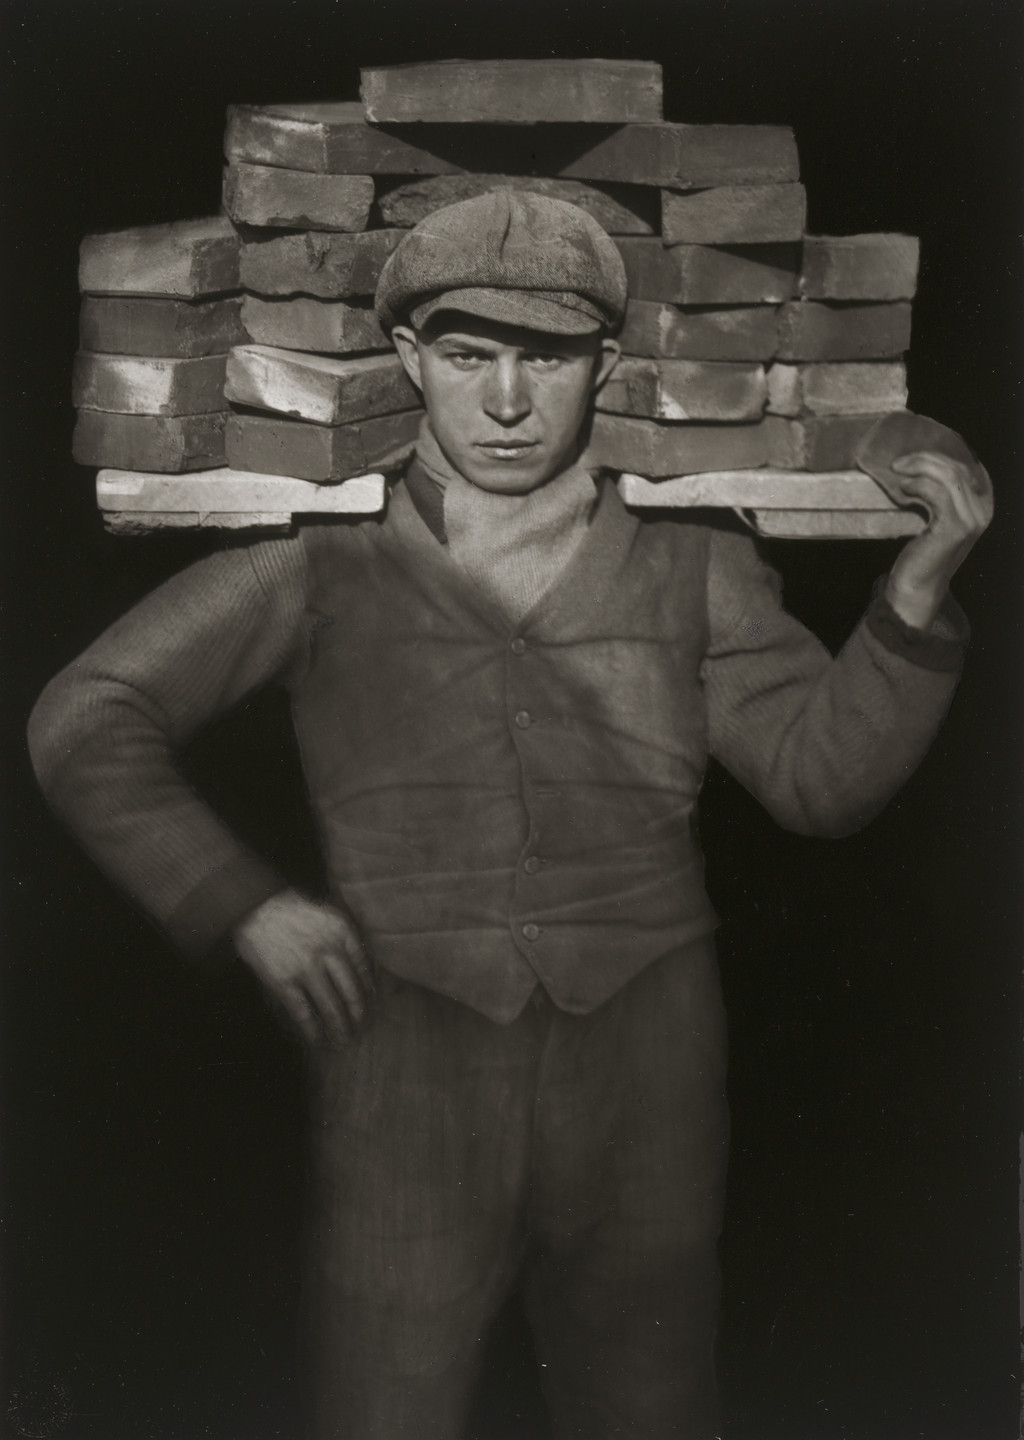 August Sander. Bricklayer. 1928